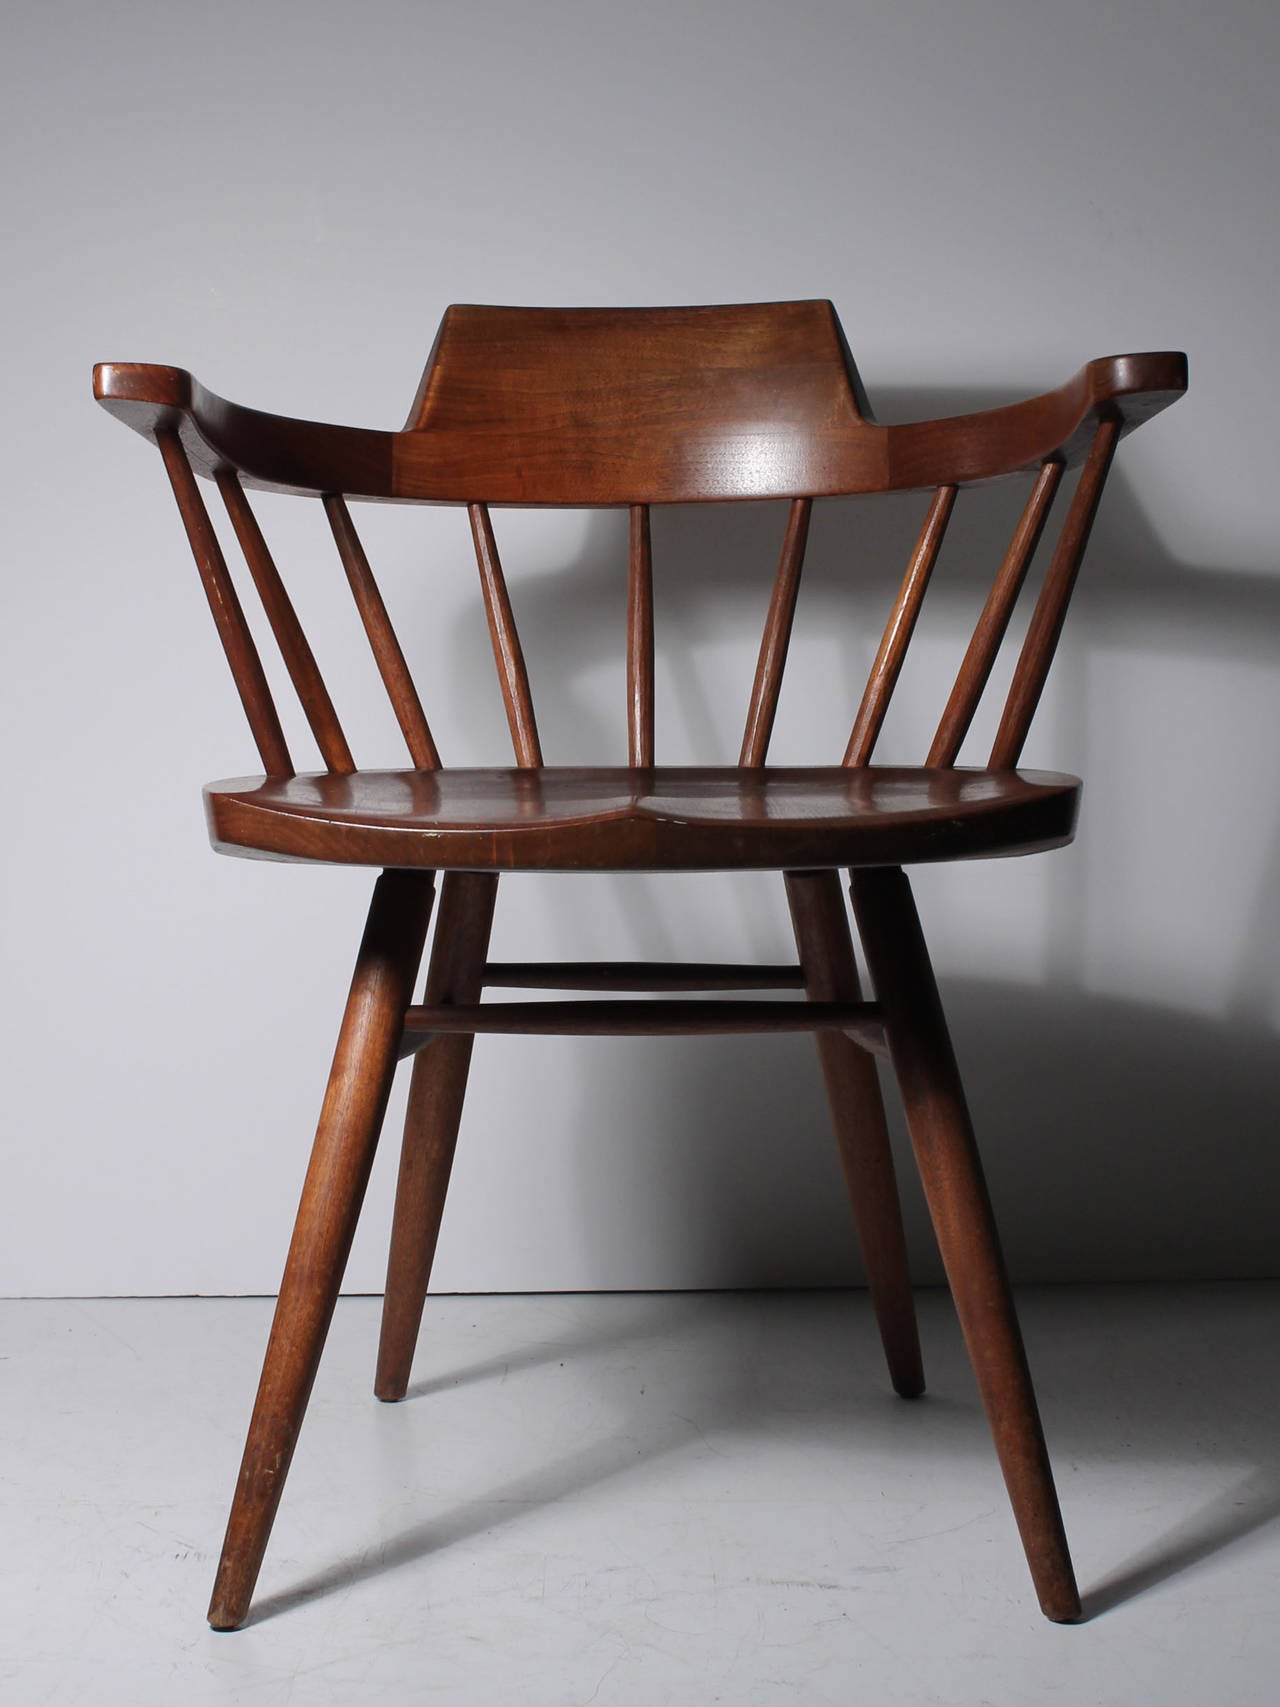 Pair Studio Nakashima Captains Chairs 4 Available For Sale at